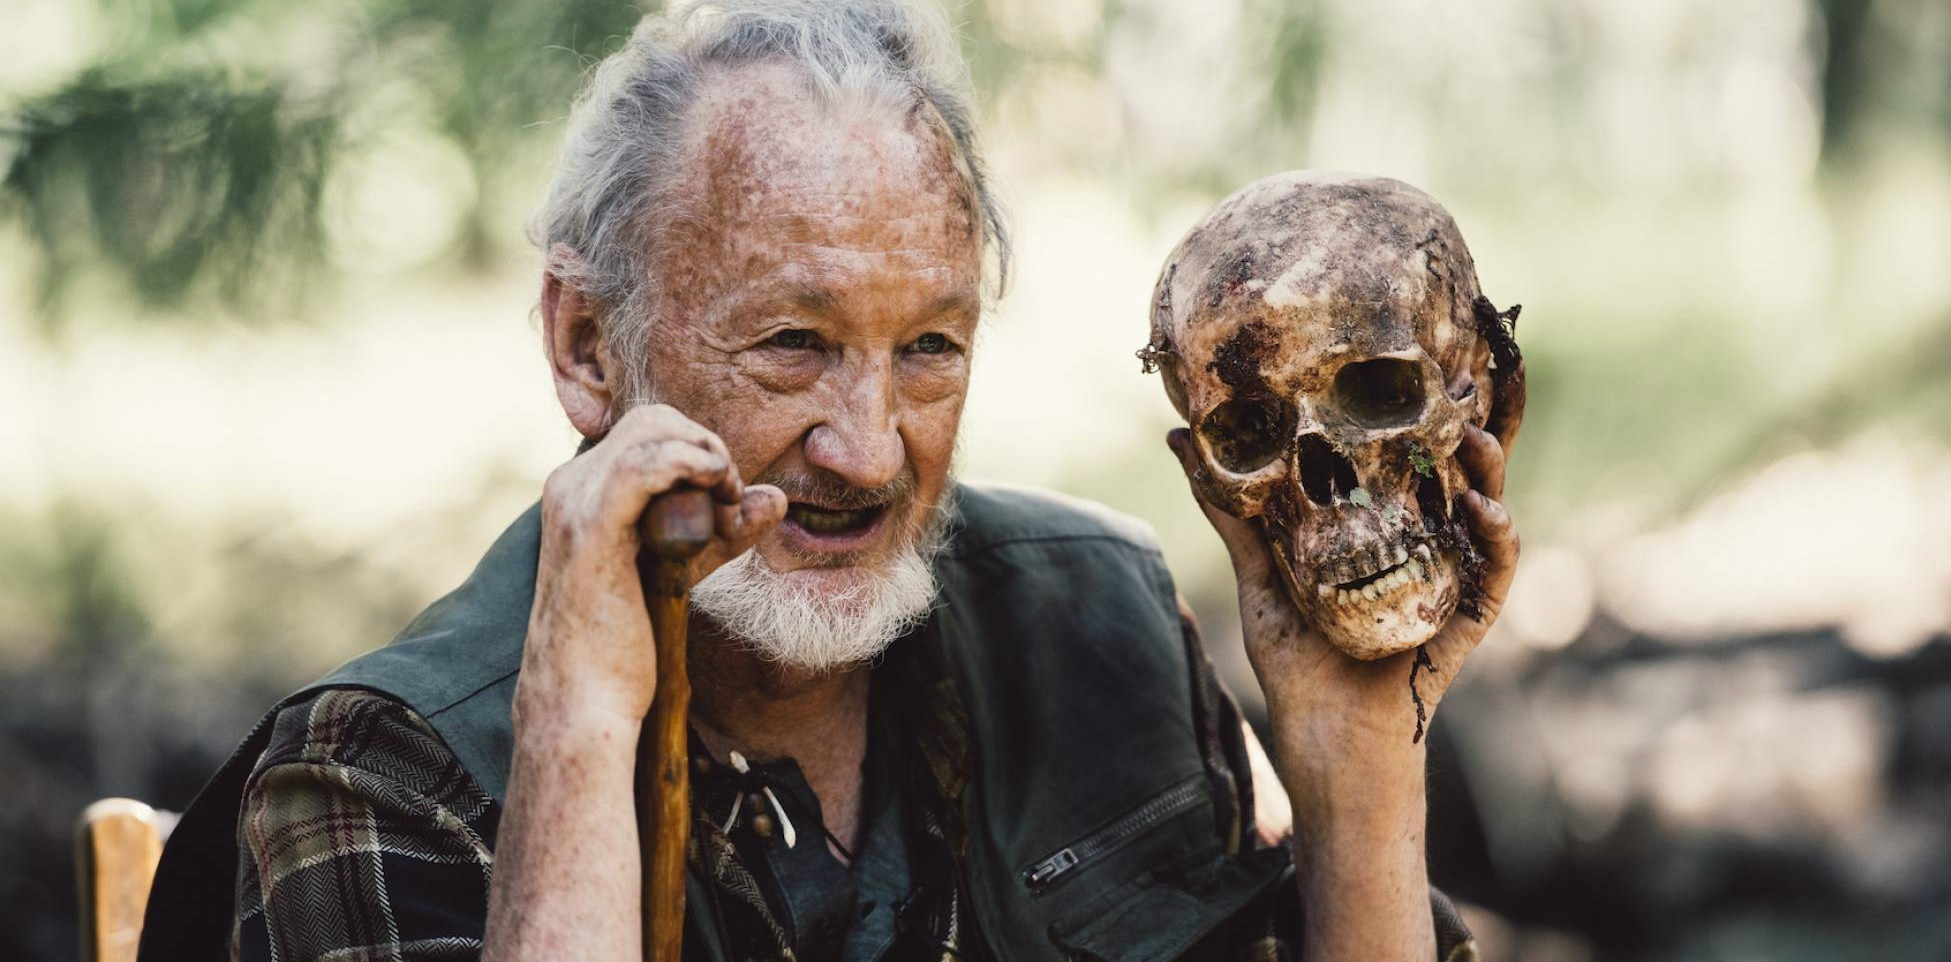 [Series Recap] TRUE TERROR WITH ROBERT ENGLUND